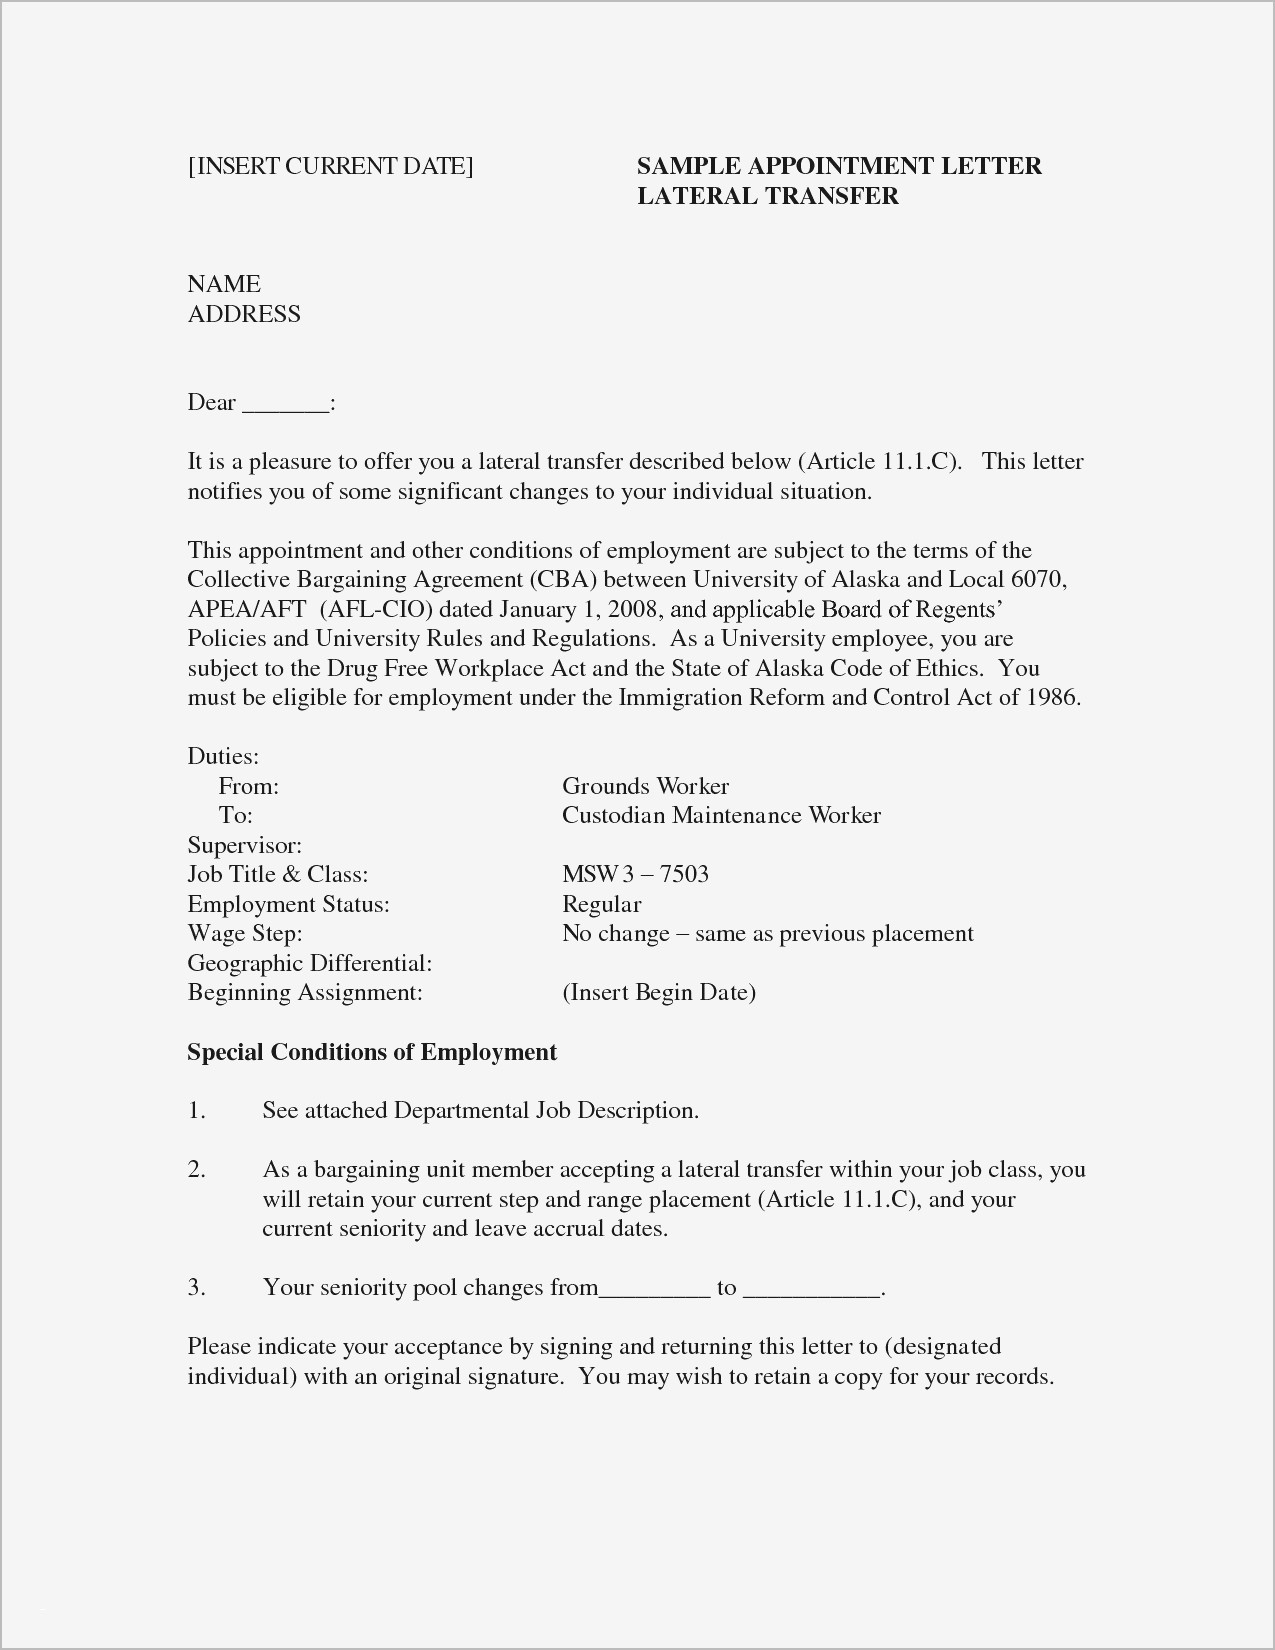 security resume skills example-Security Resume Skills 23 Security Resume Skills 13-m